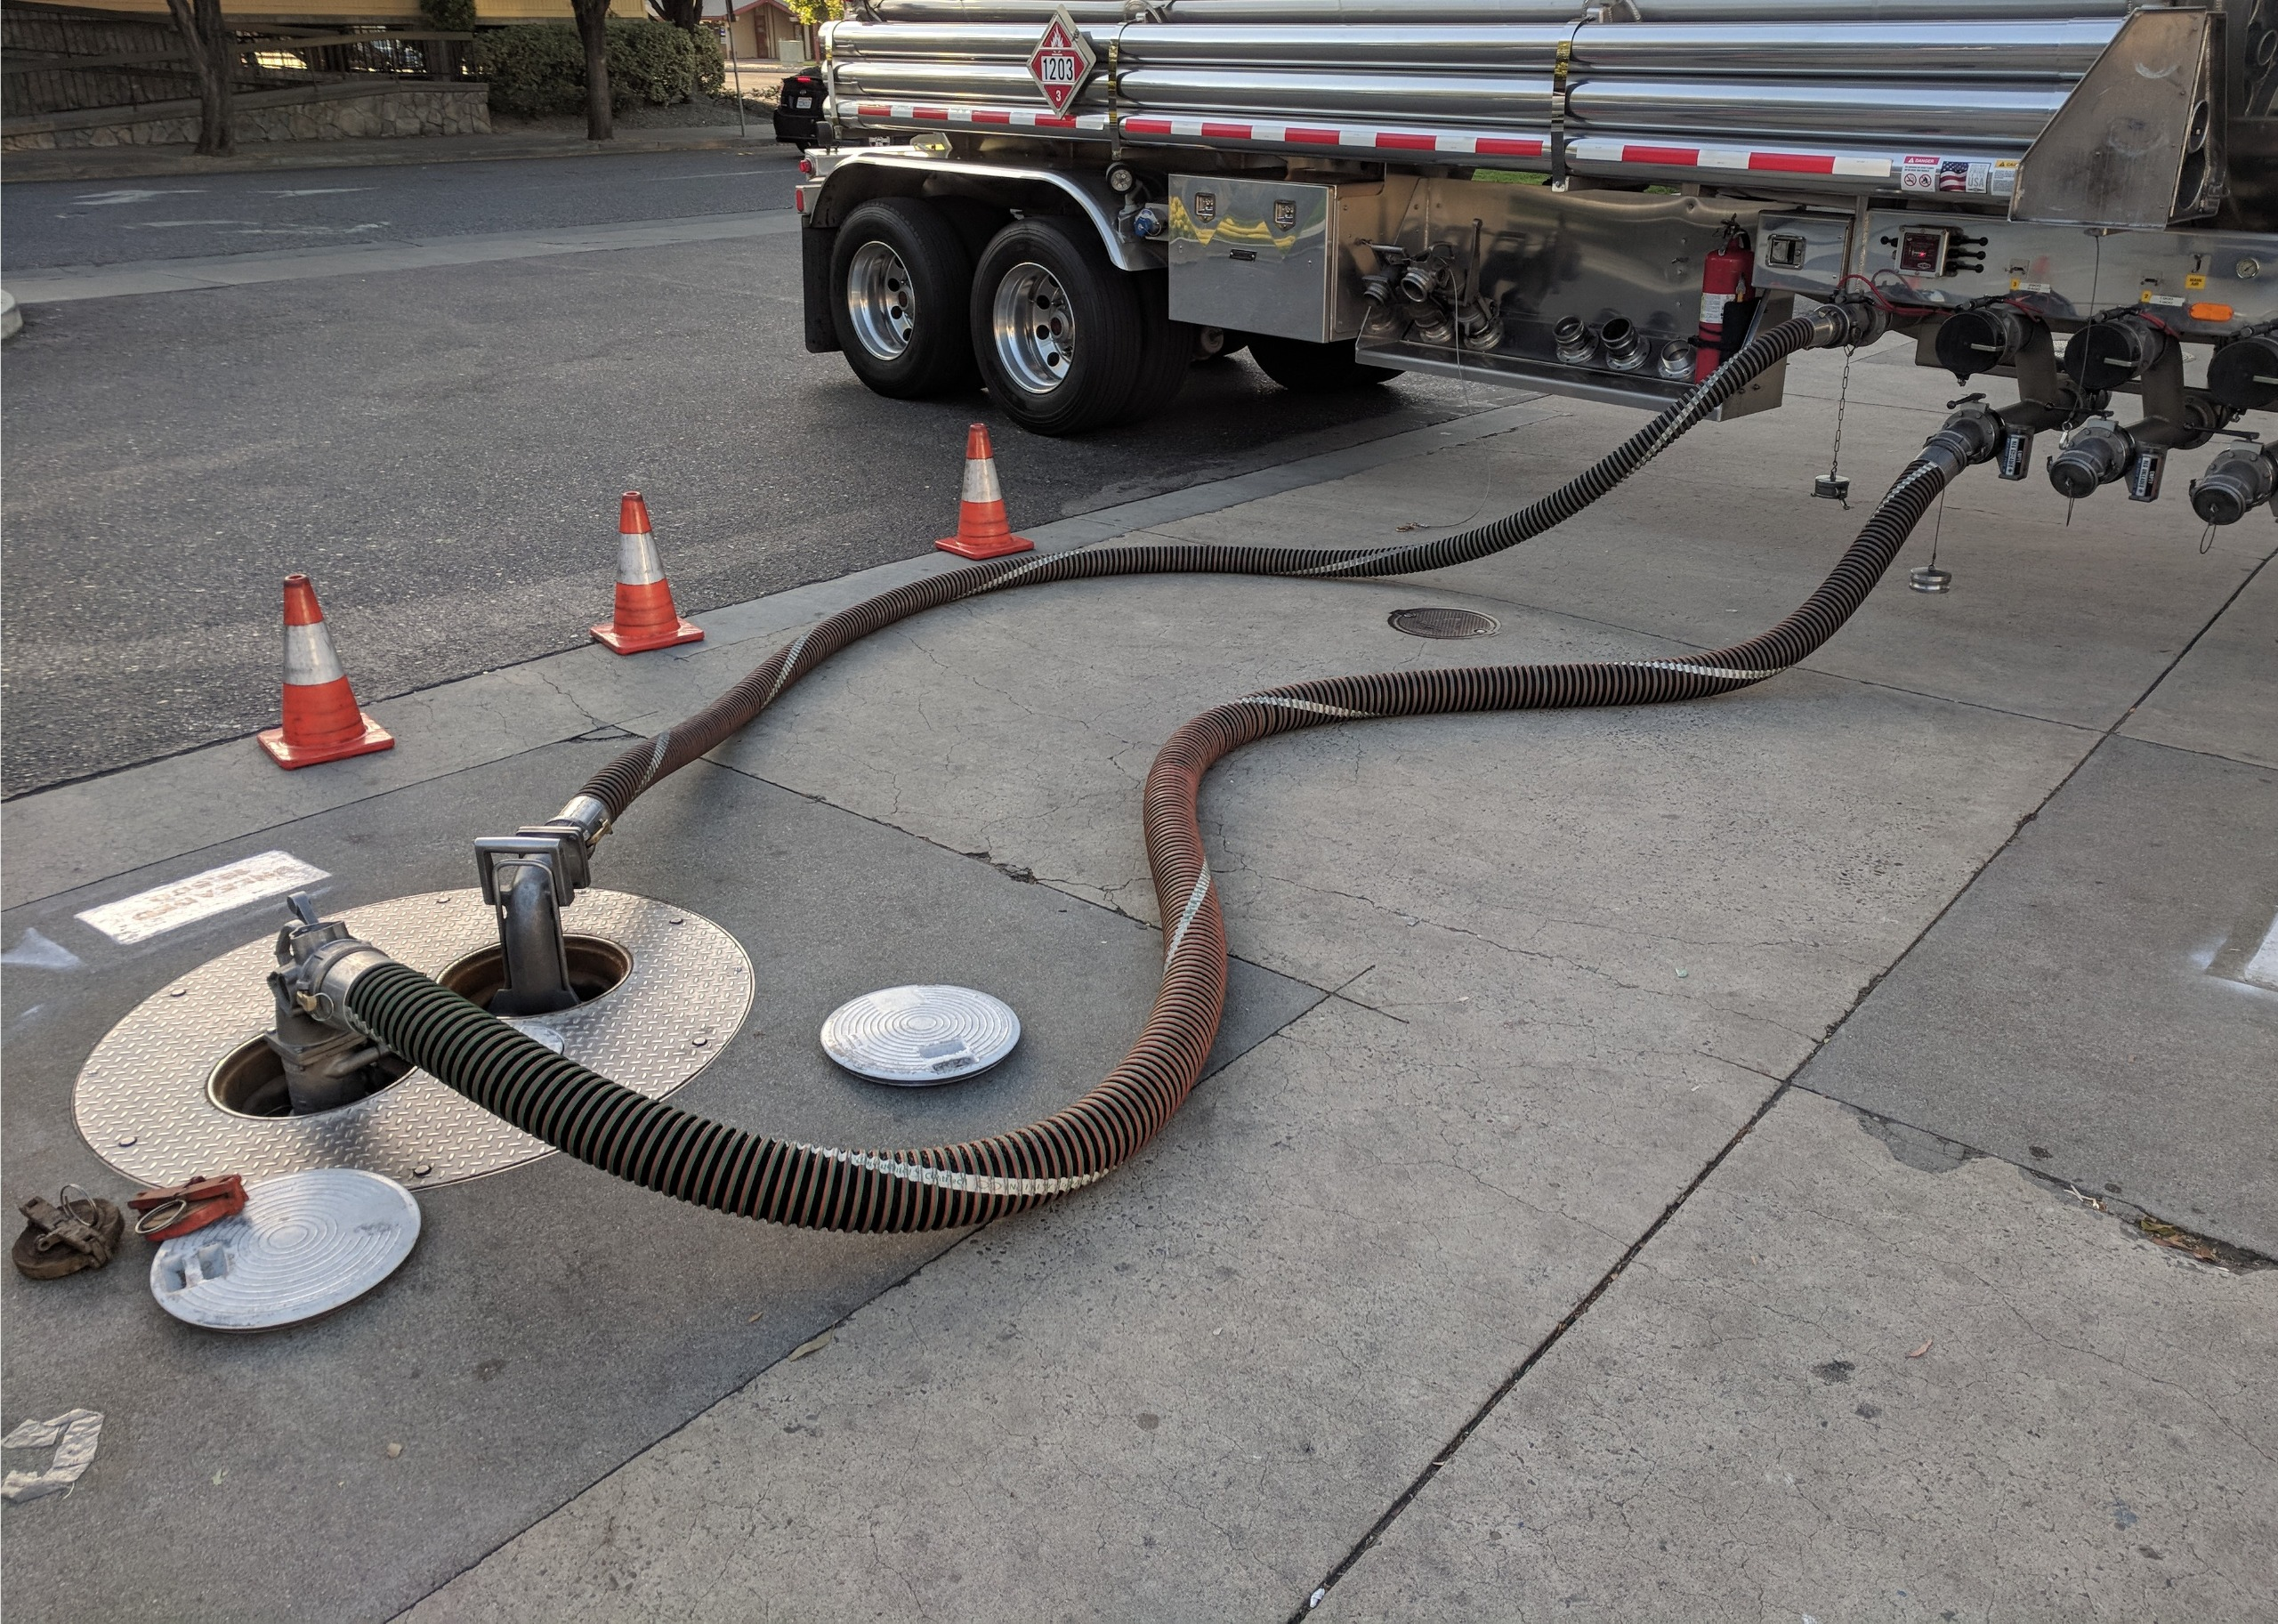 Underground petrol tank filling from truck